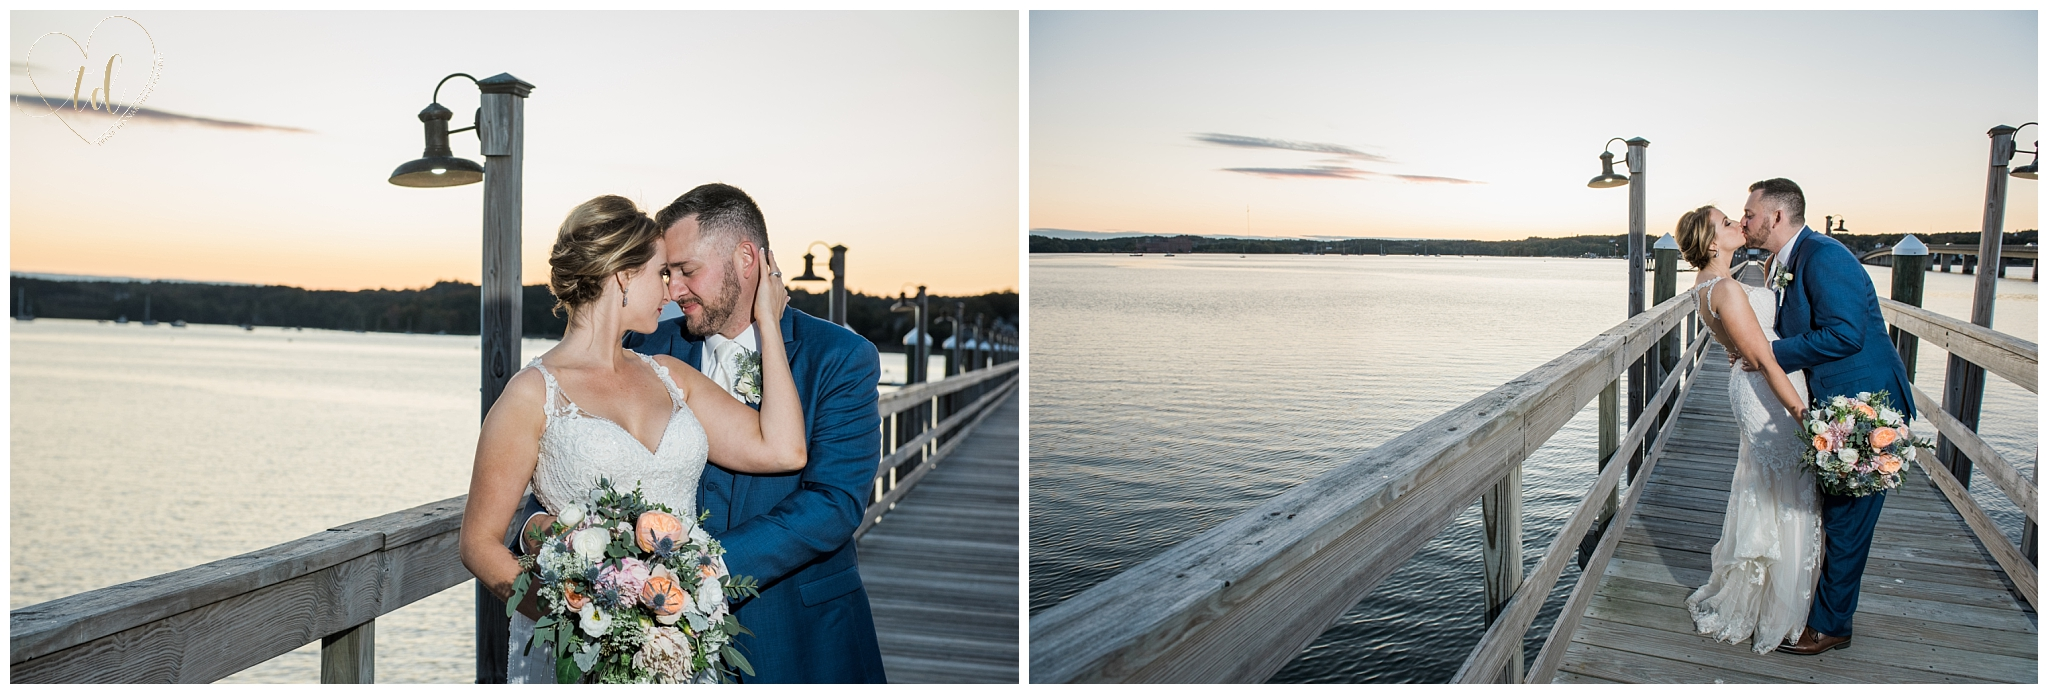 Sheepscot Harbour Water's Edge Wedding Photography